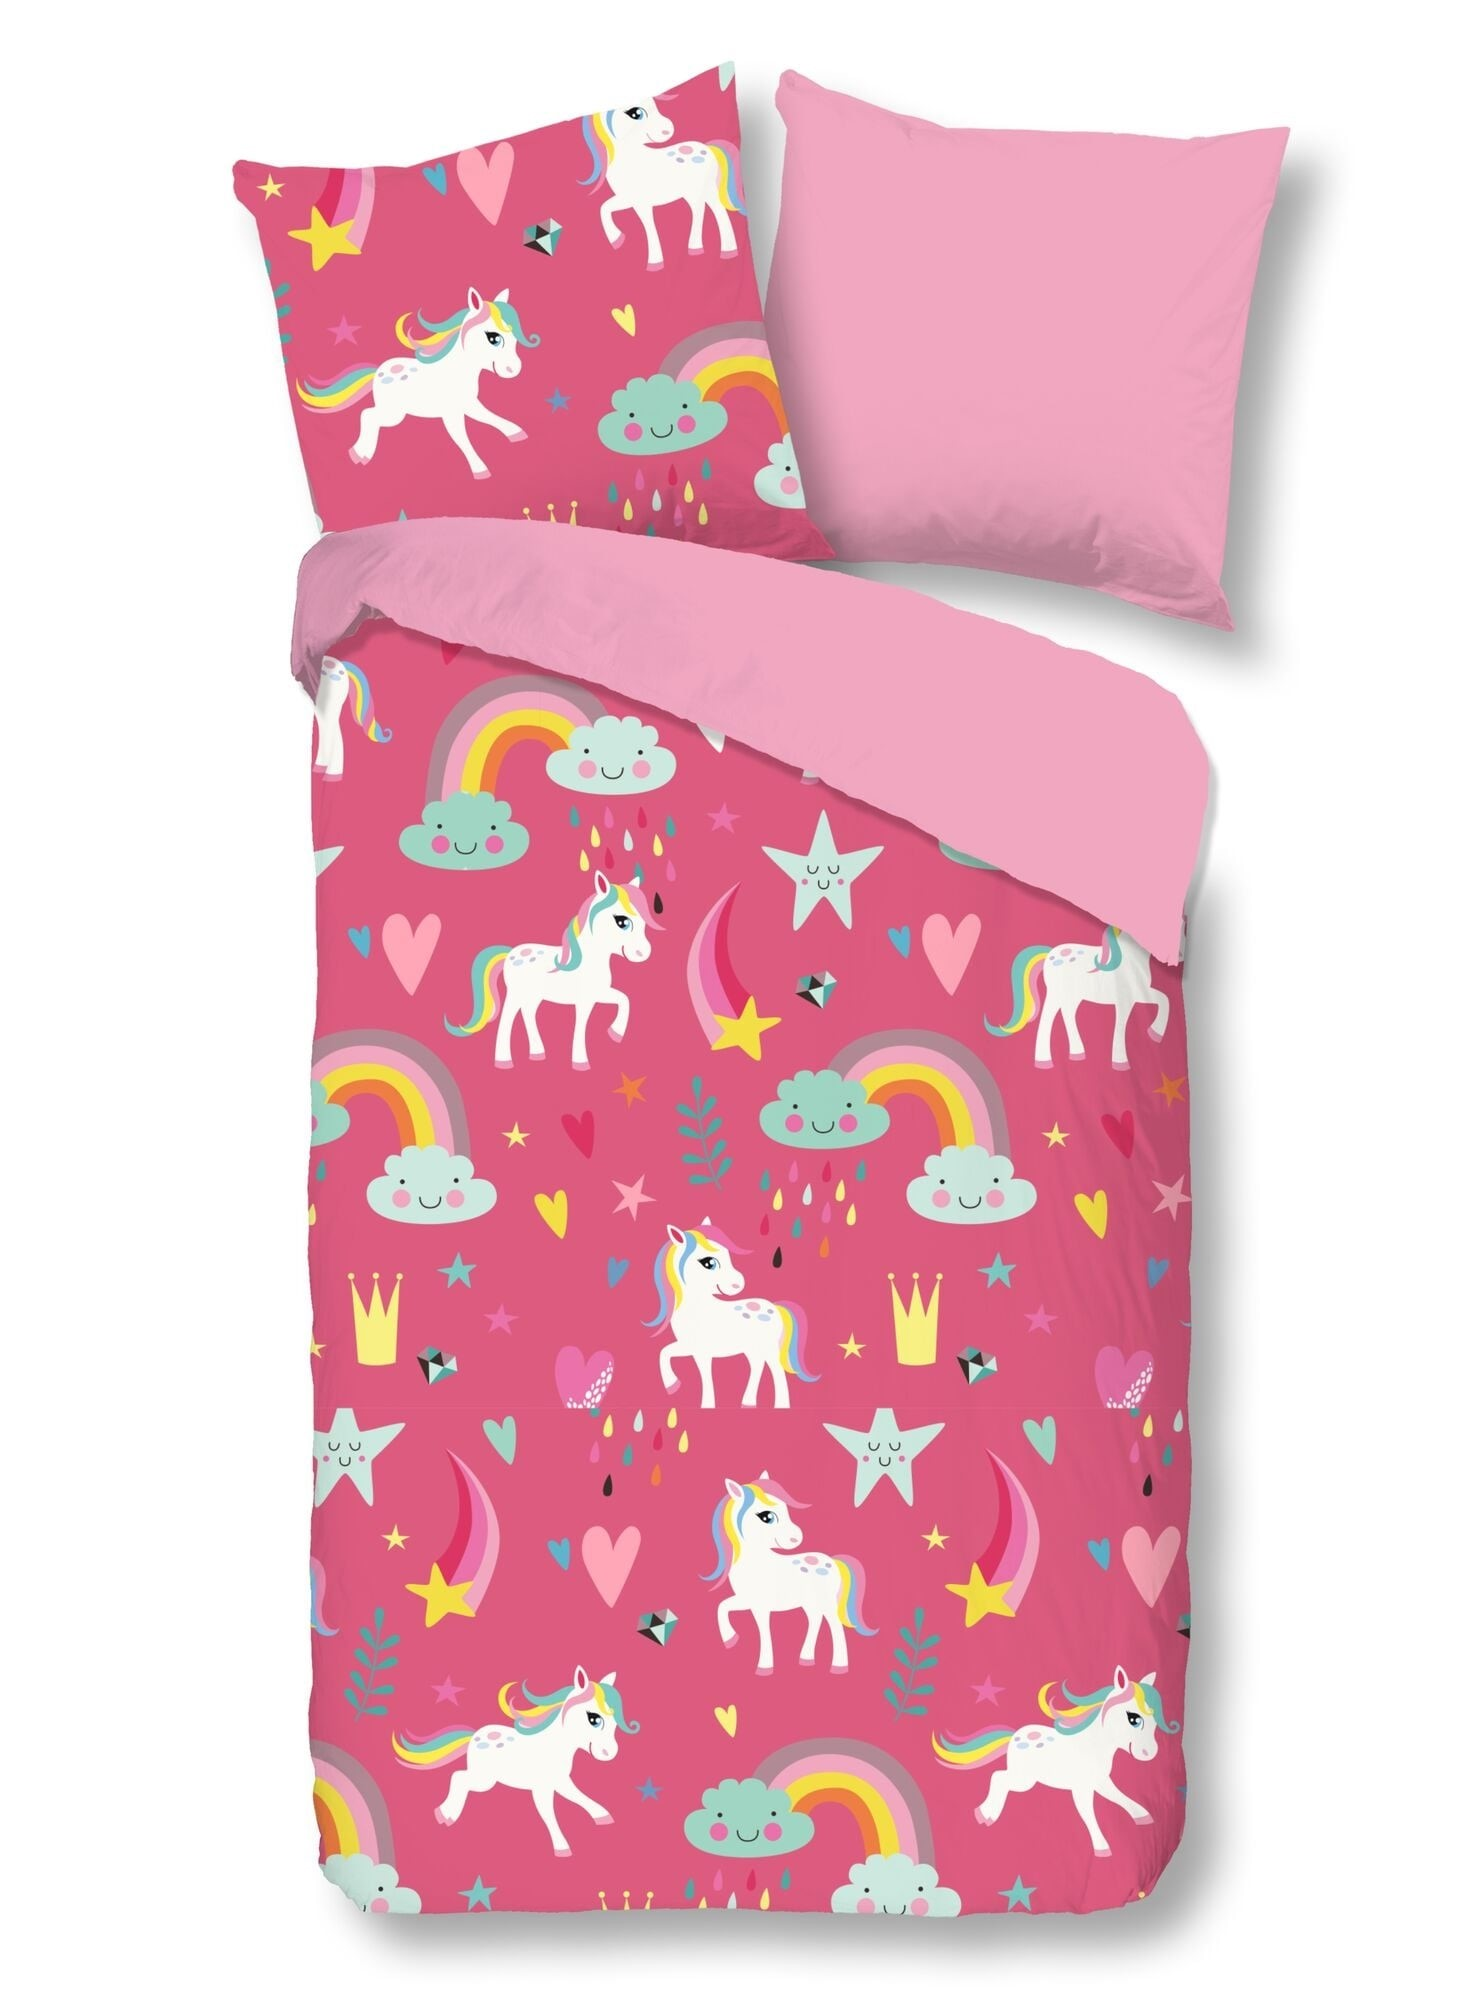 Home pink double-sided single bed bed linen Good Morning Unicorn 140x200cm